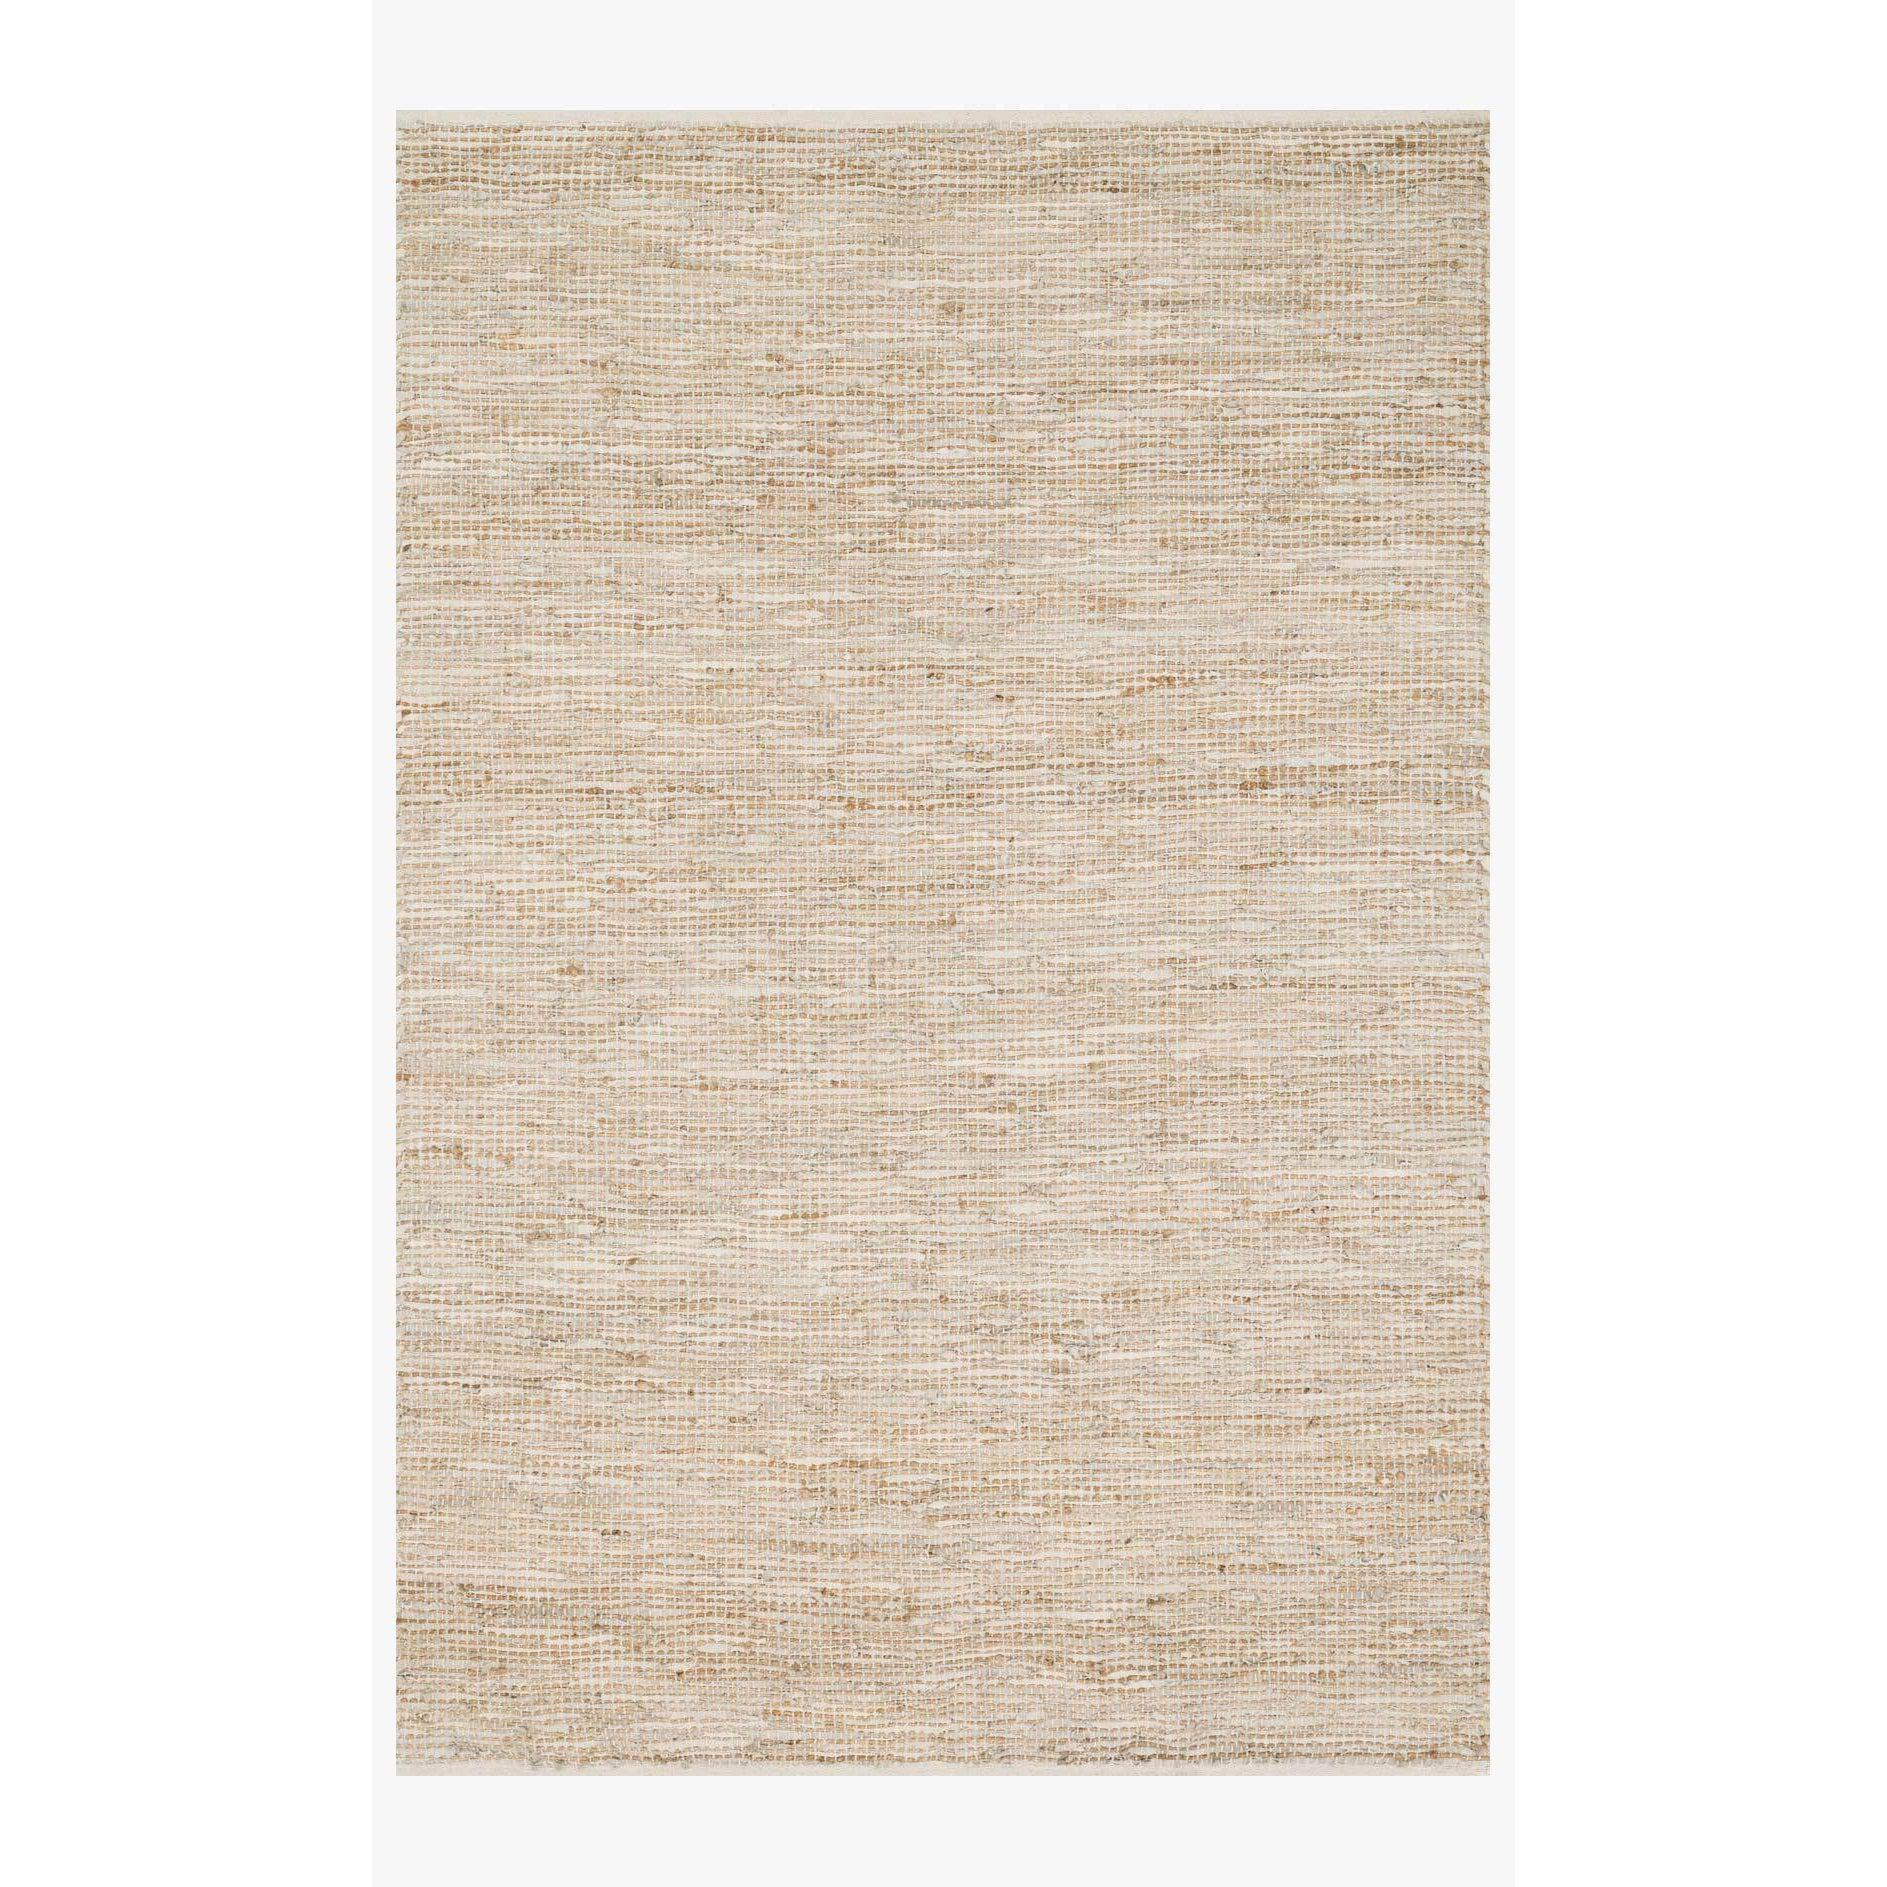 Edge Rugs by Loloi Rug - ED-01 - Ivory-Loloi Rugs-Blue Hand Home